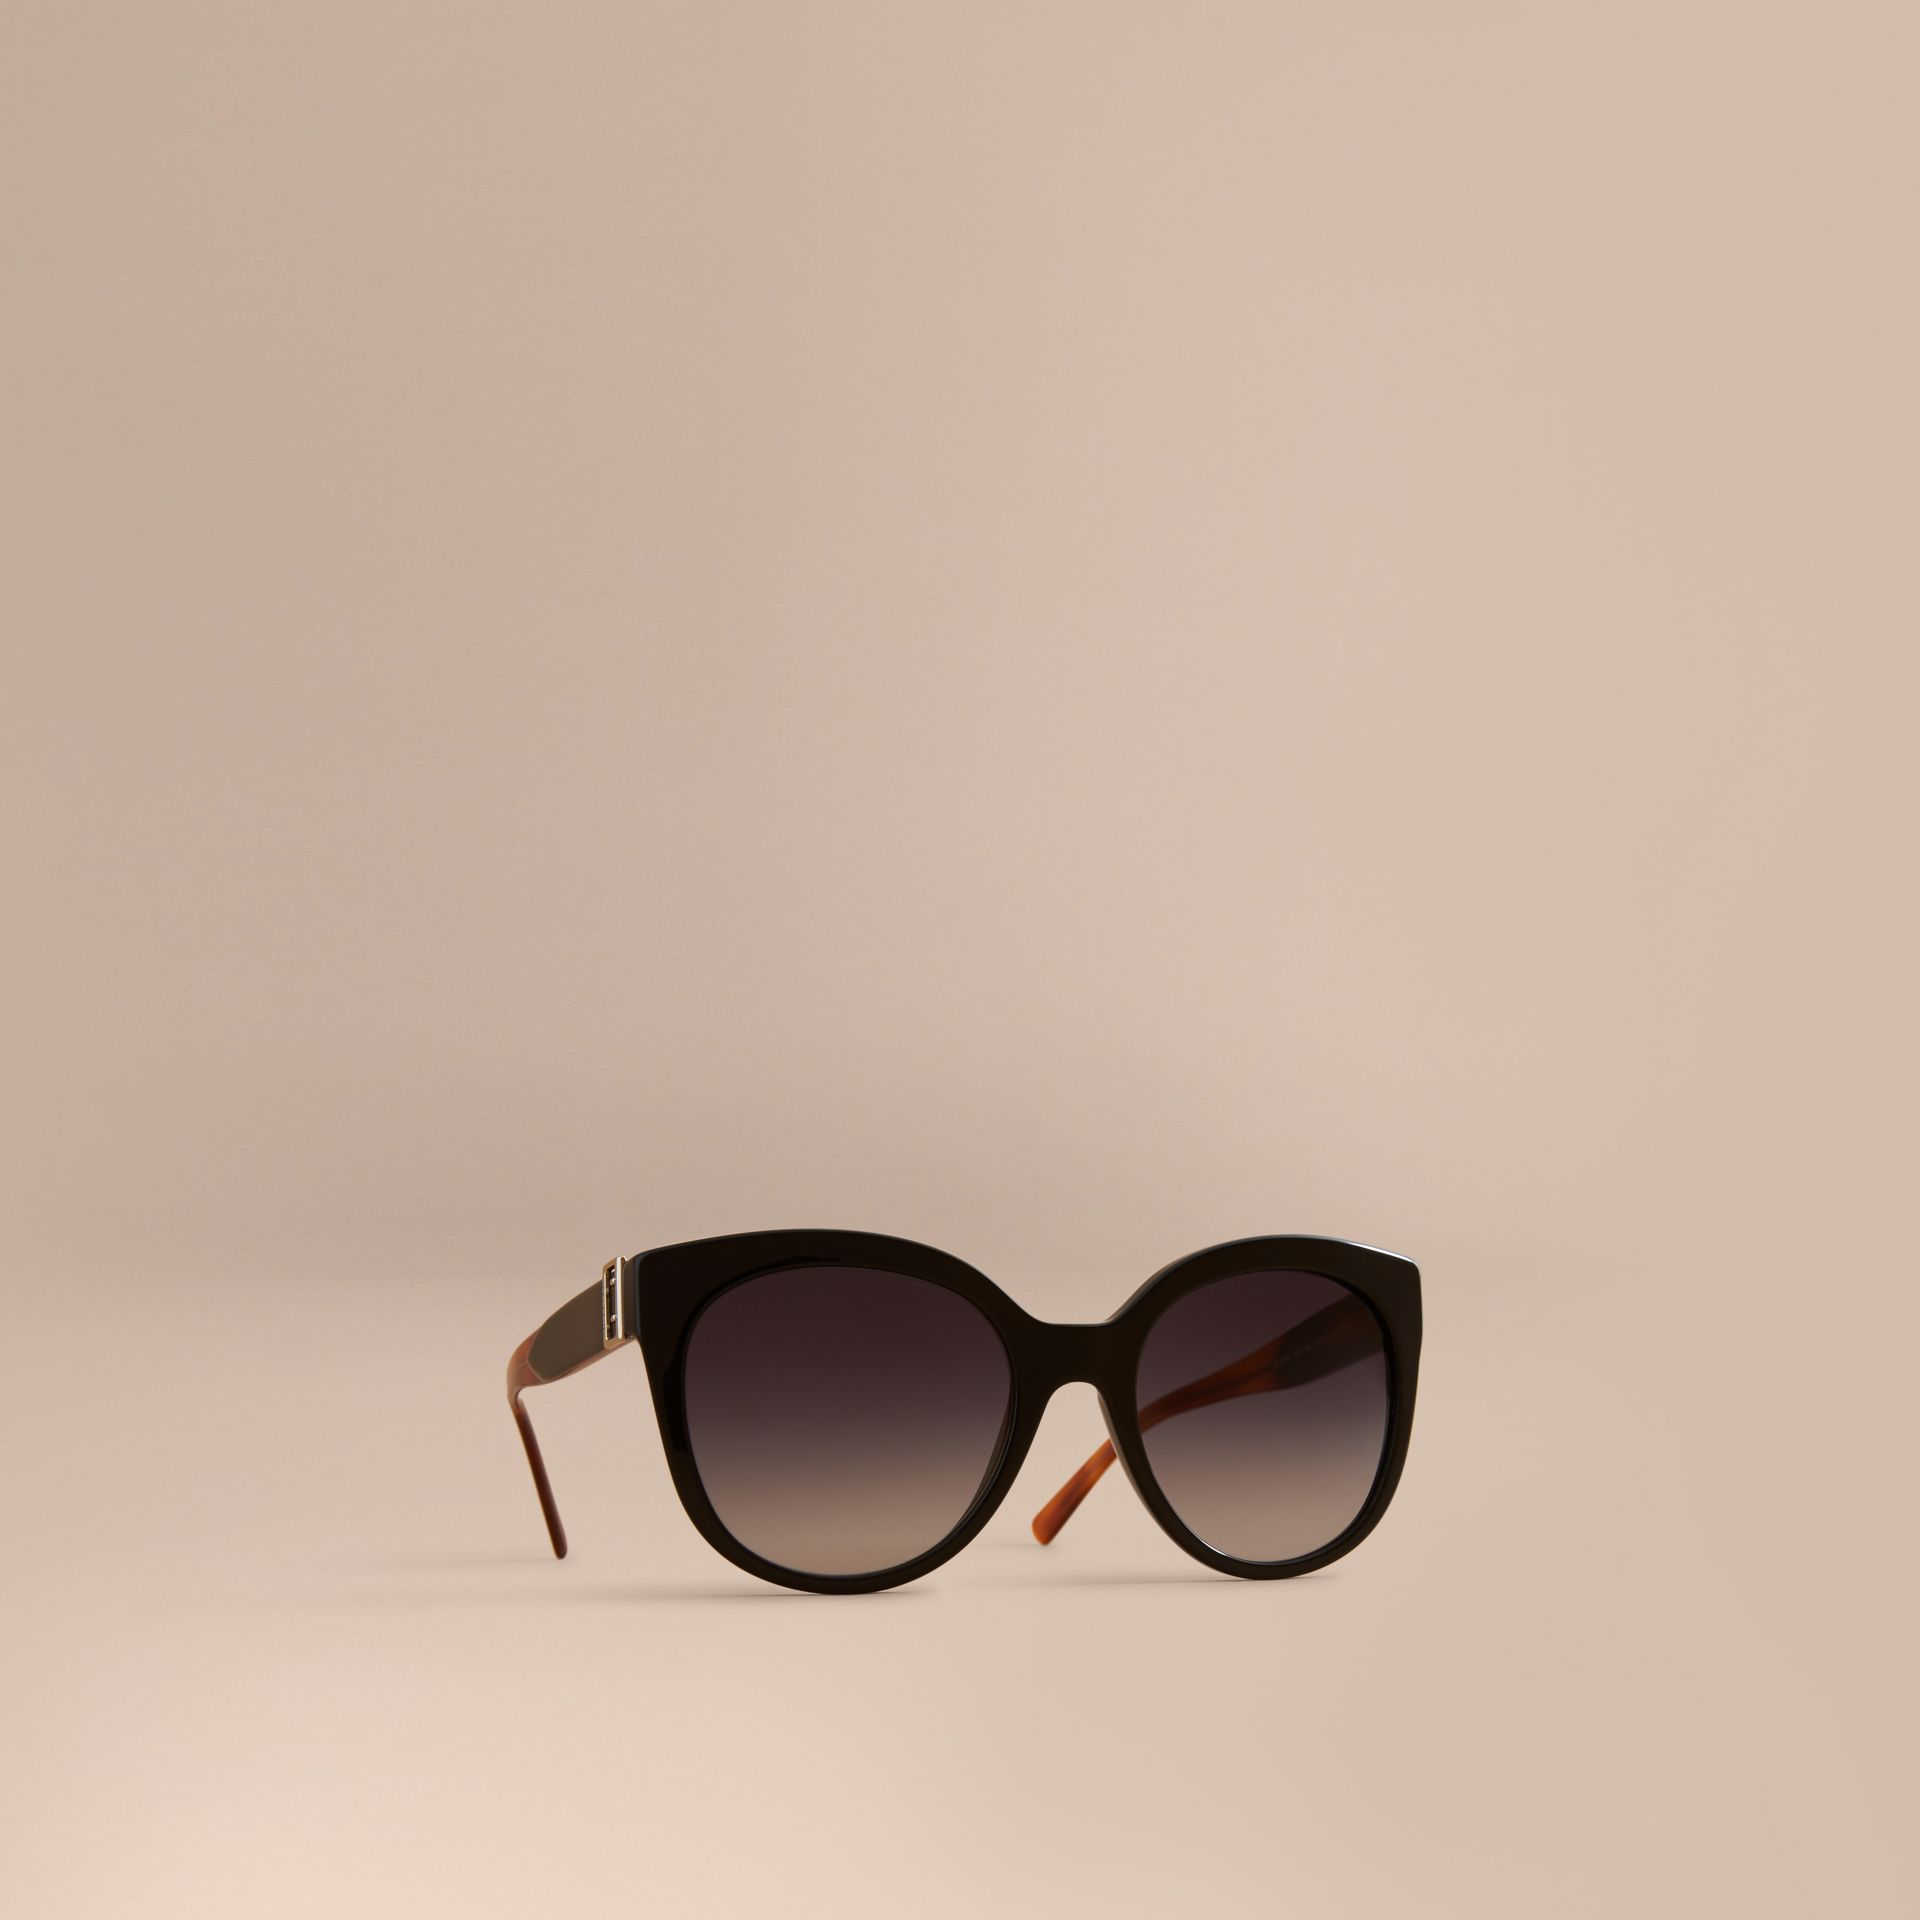 Buckle Detail Cat-eye Frame Sunglasses in Black - Women | Burberry - gallery image 0